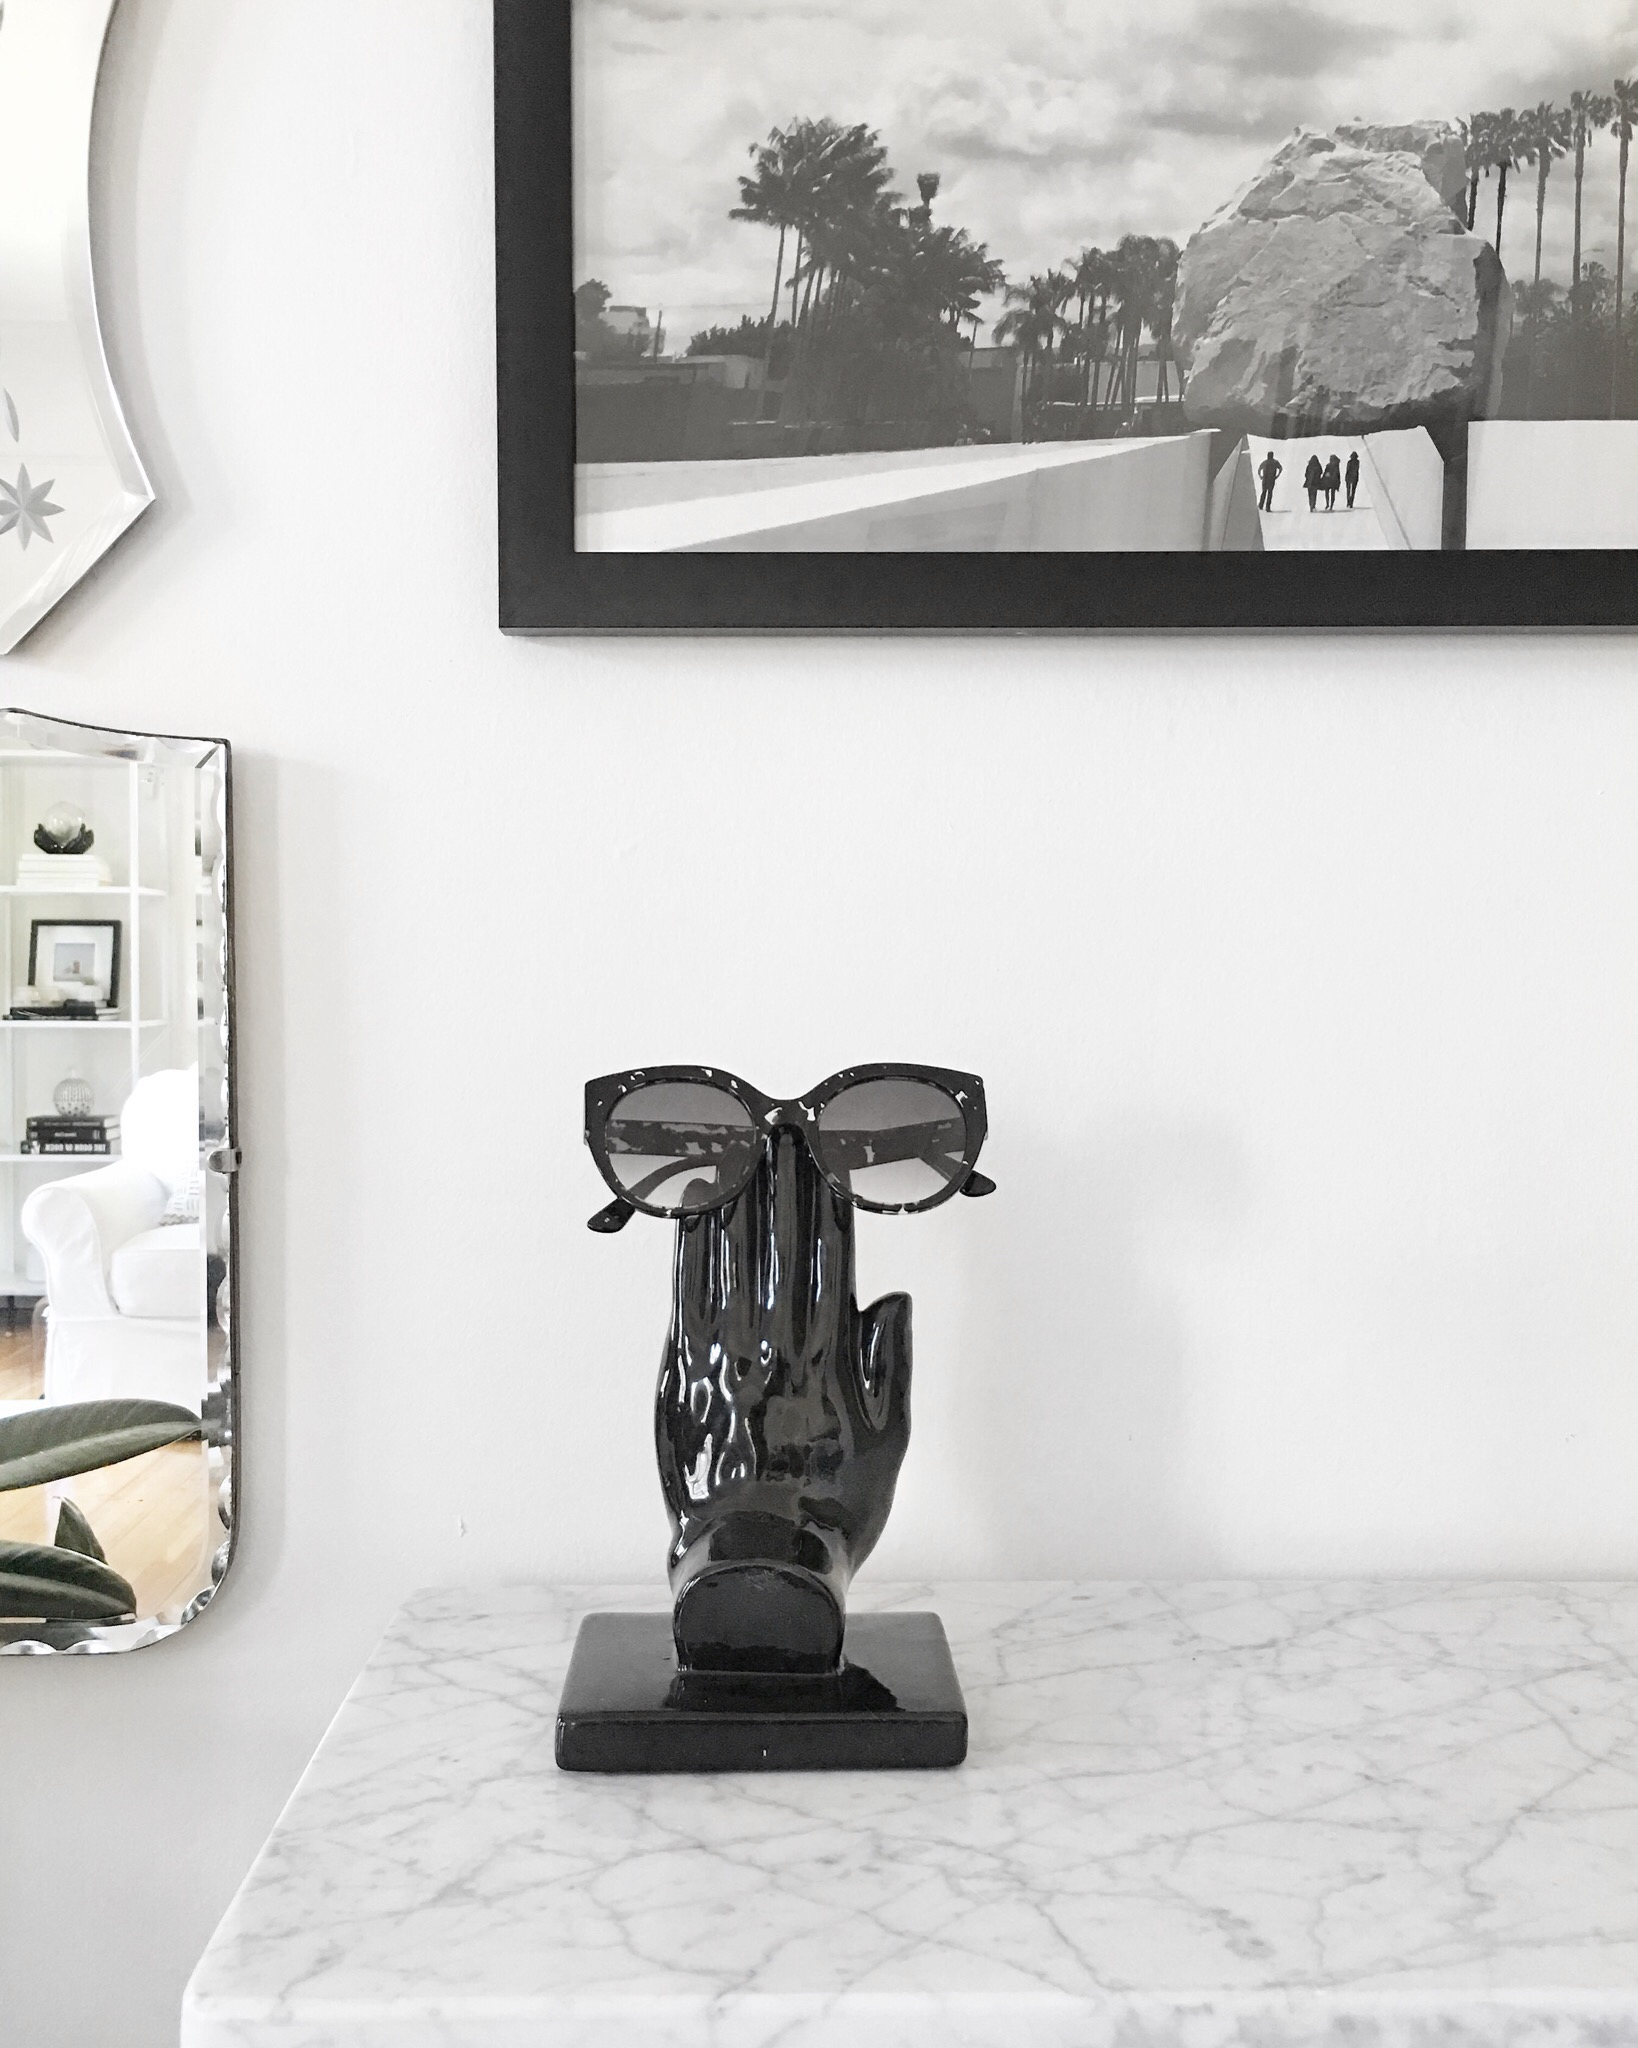 Black ceramic bookend re-purposed as a sunglasses holder and a closer look at the quality of the Framebridge iPhone photo print.